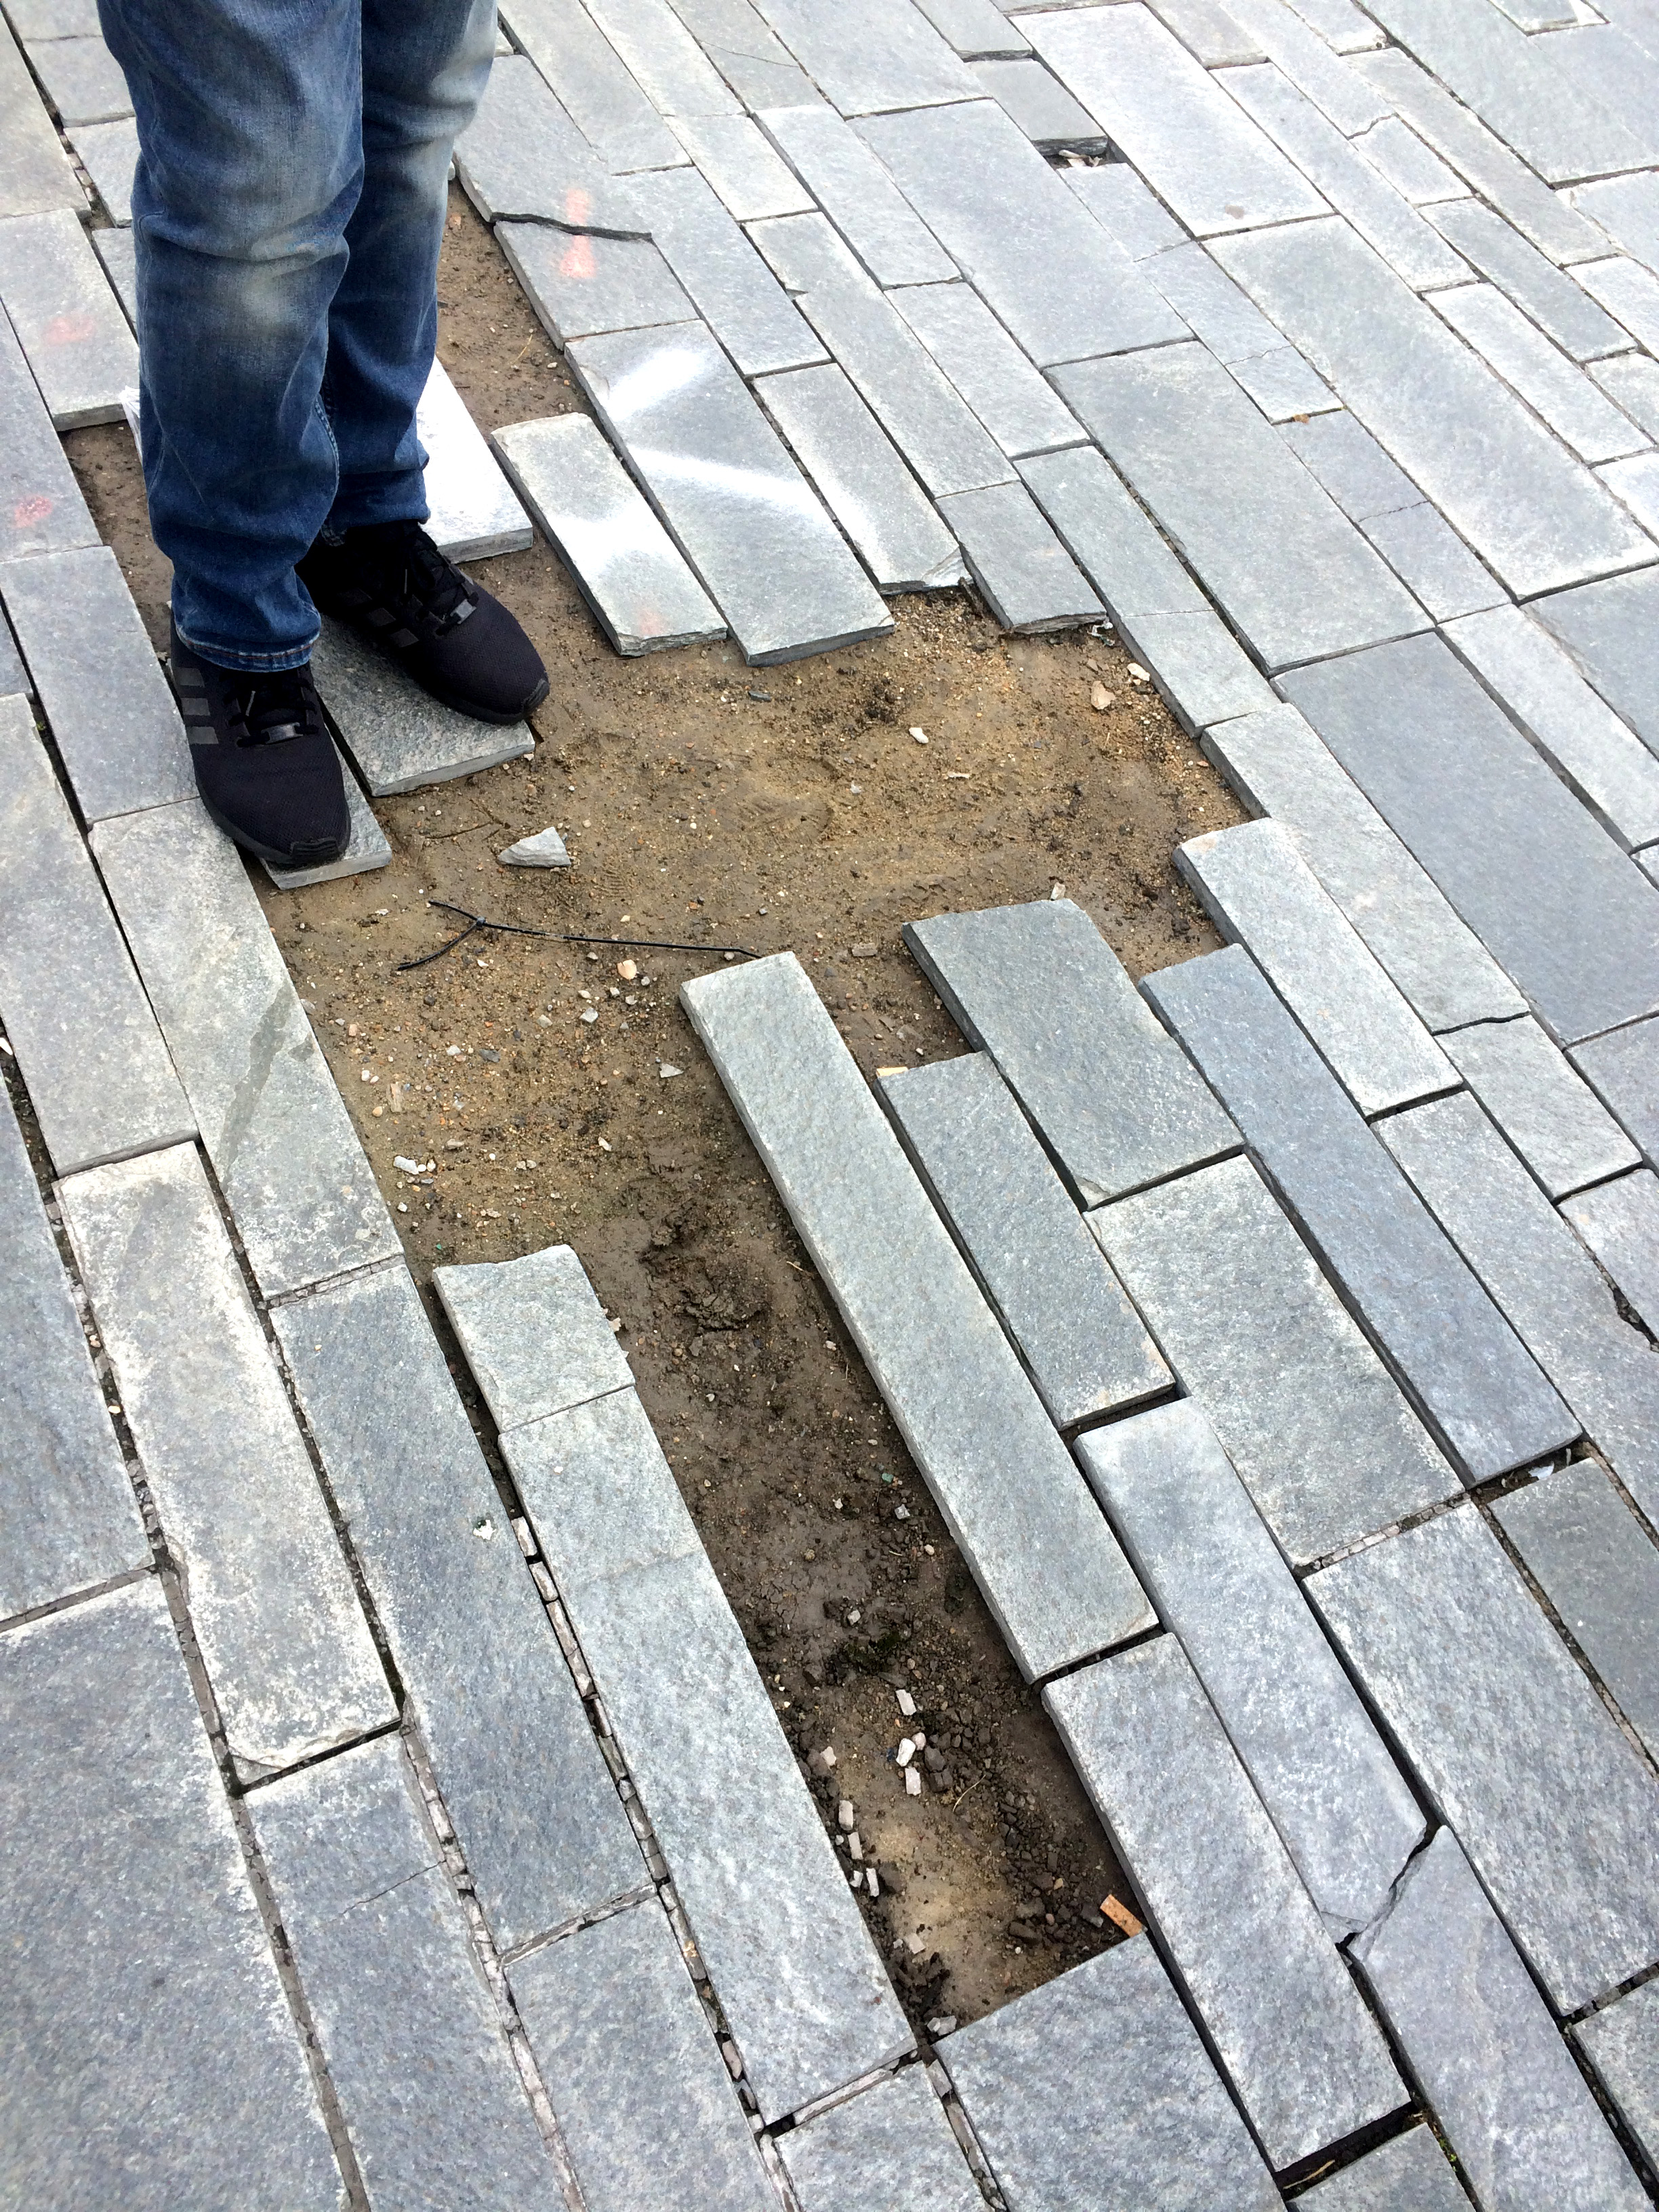 The students spot the less-than-perfect paving!